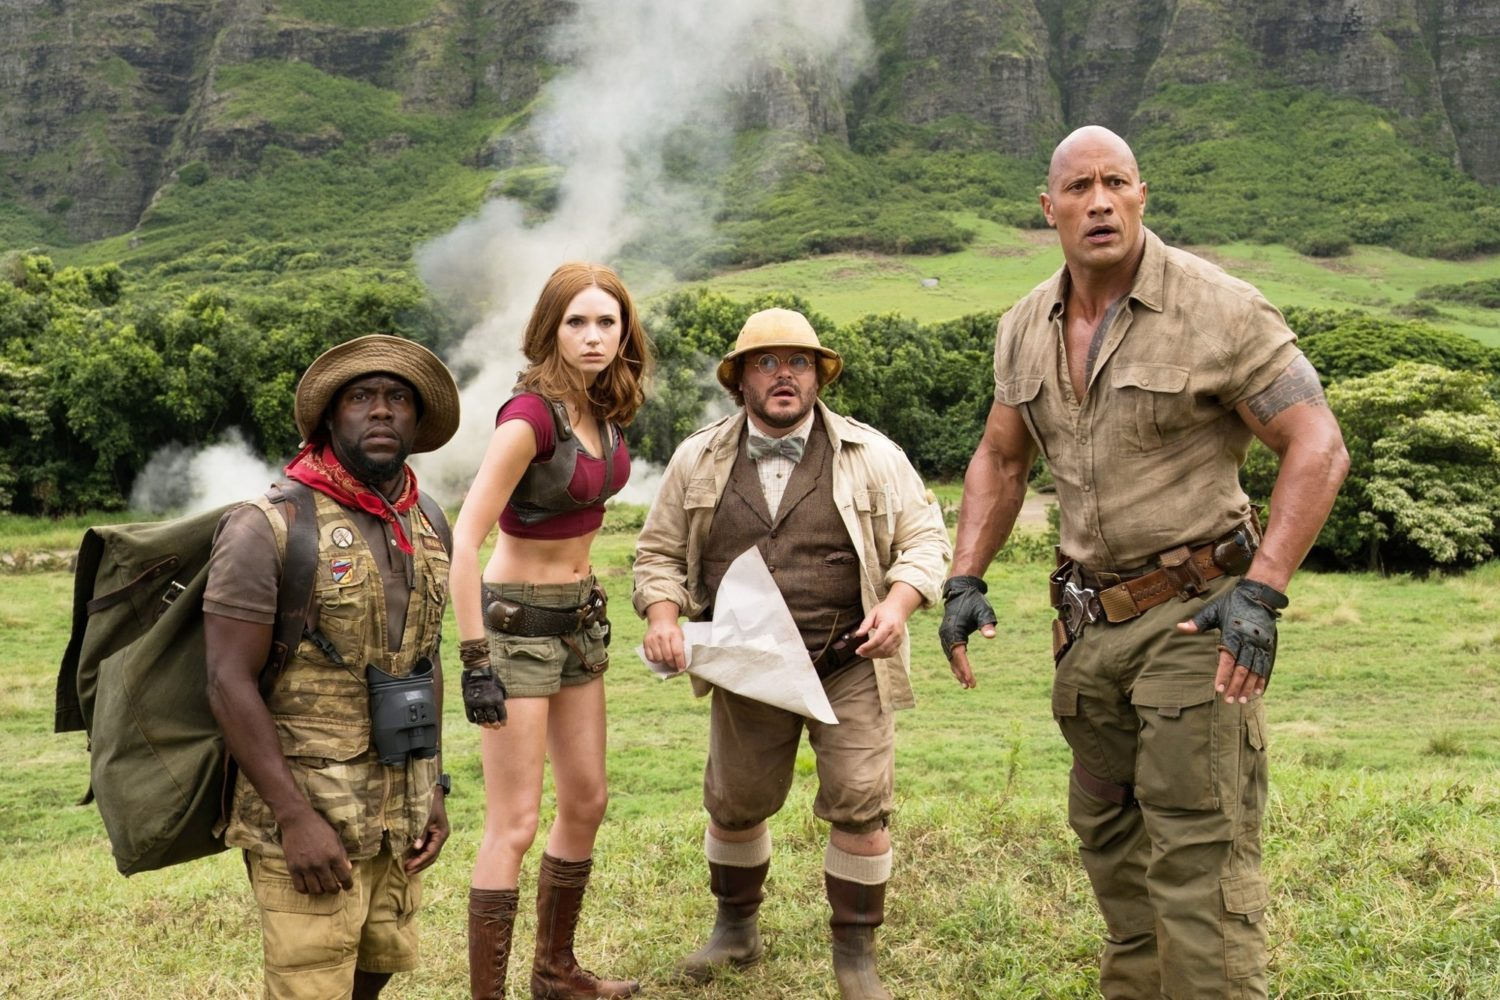 The stars of Jumanji 4: Welcome To The Jungle all together